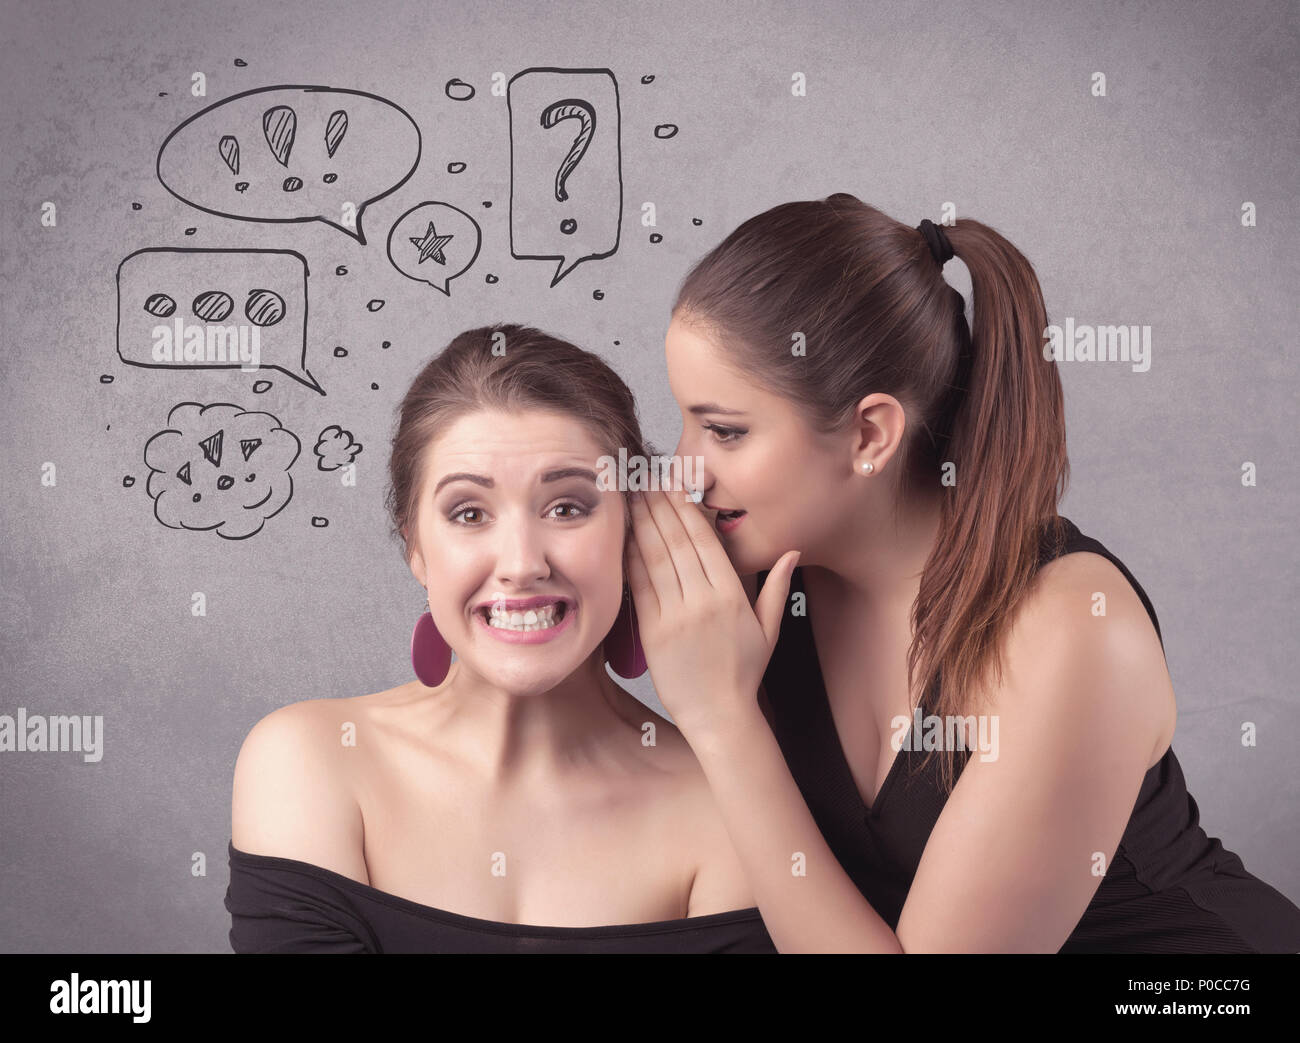 Two girls chatting and sharing their secrets concept with drawn chat bubbles on the background urban wall. - Stock Image